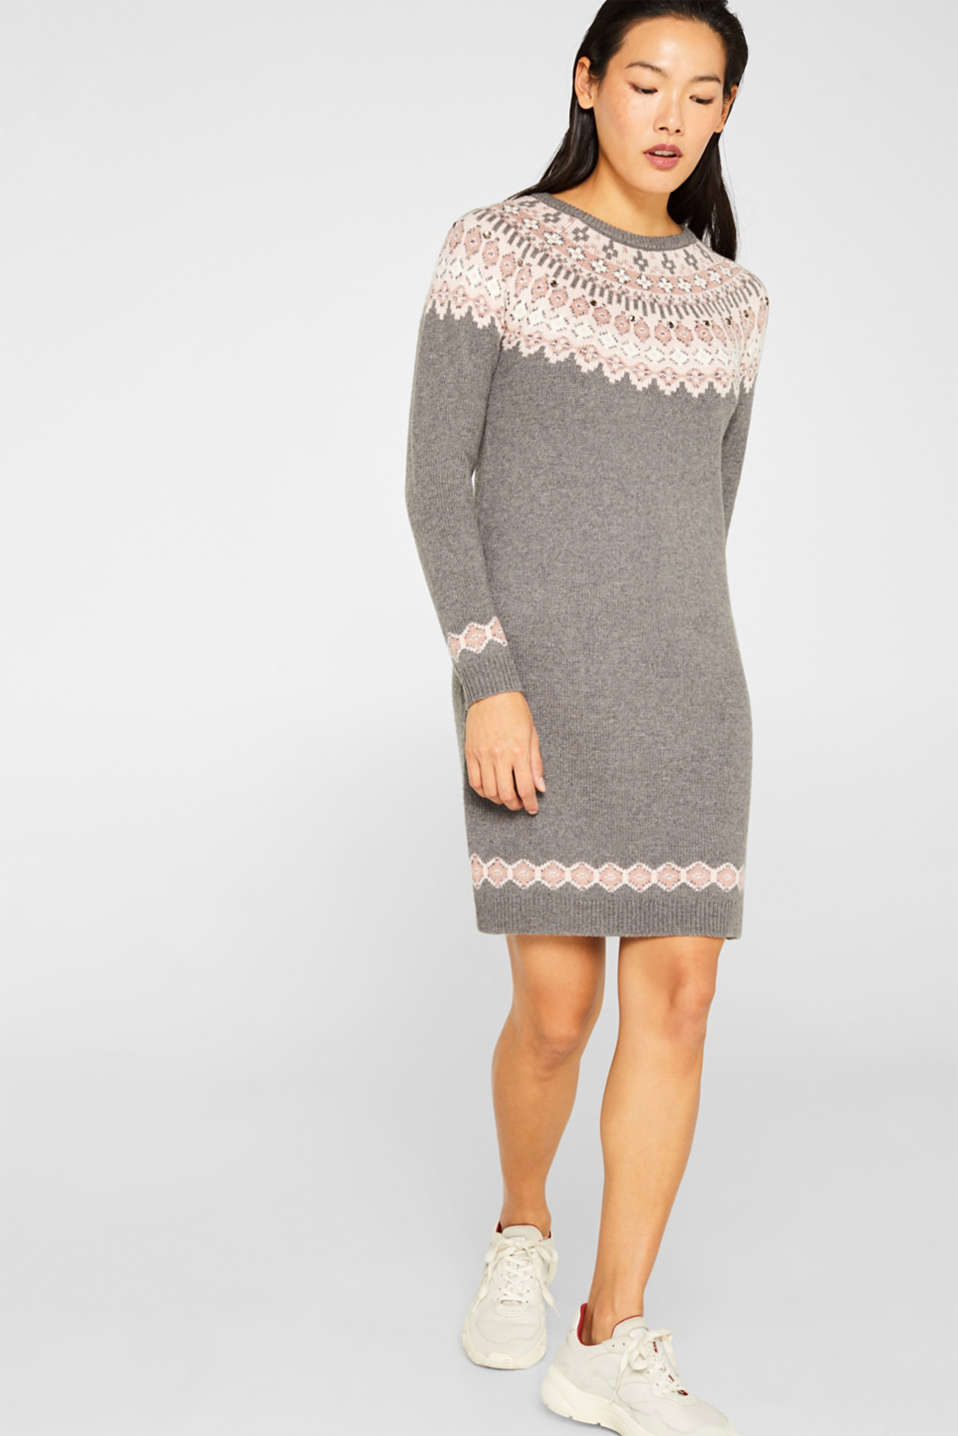 Esprit - Knit dress with a glittering jacquard pattern